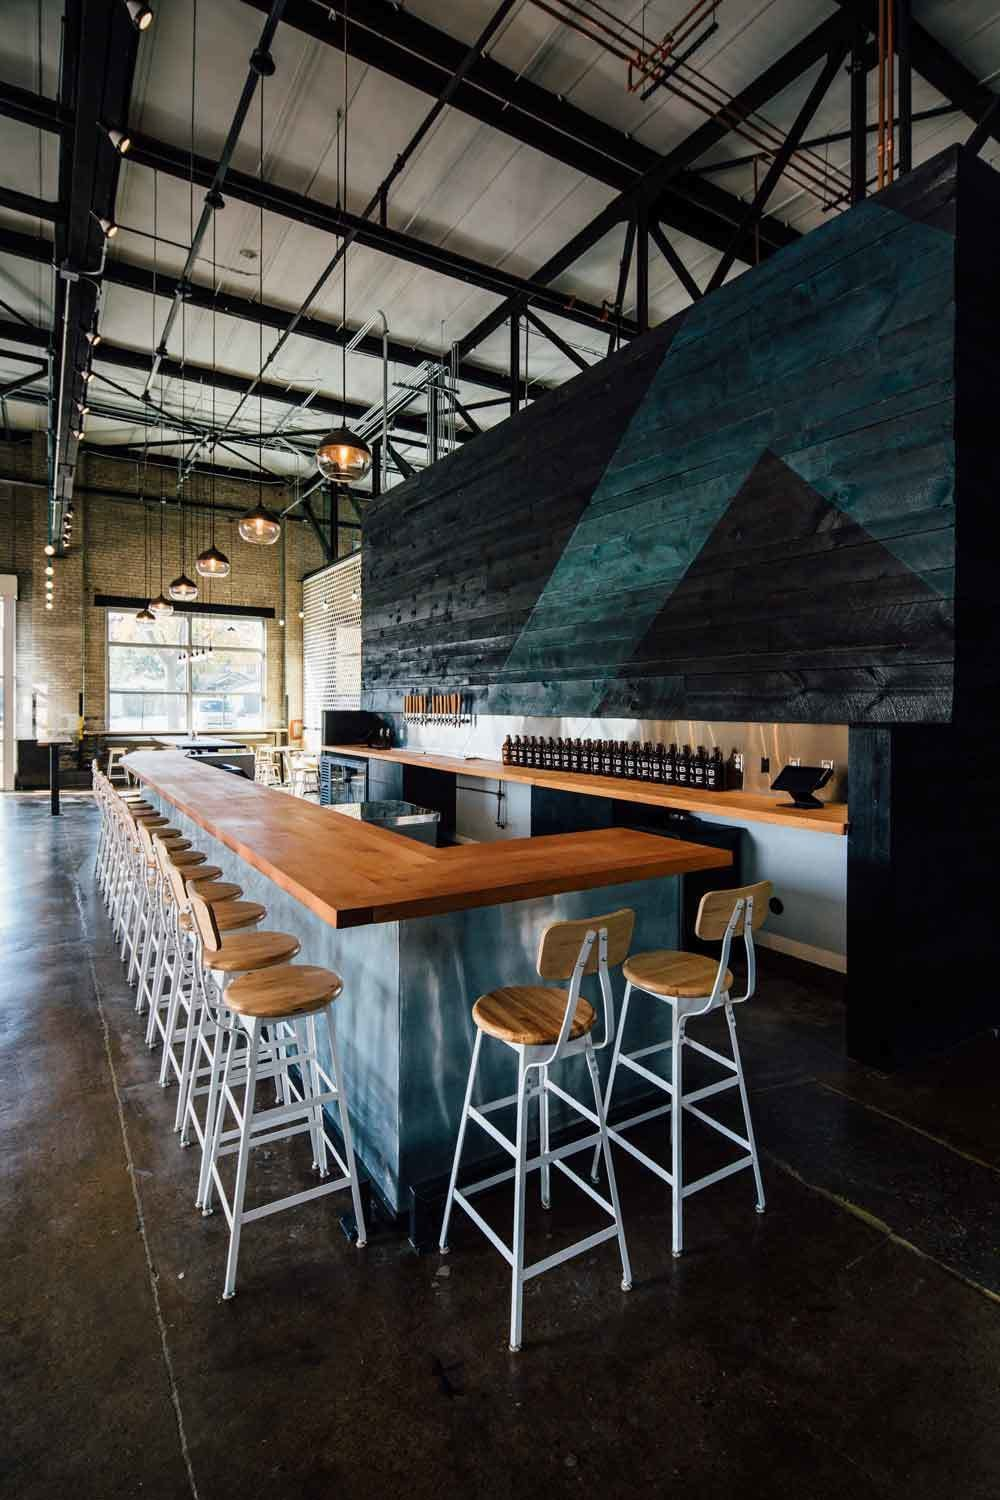 an-indoor-biergarten-with-an-industrial-edge-this-is-the-perfect-combination-of-the-traditional-beer-hall-and-the-modern-meeting-place.jpg